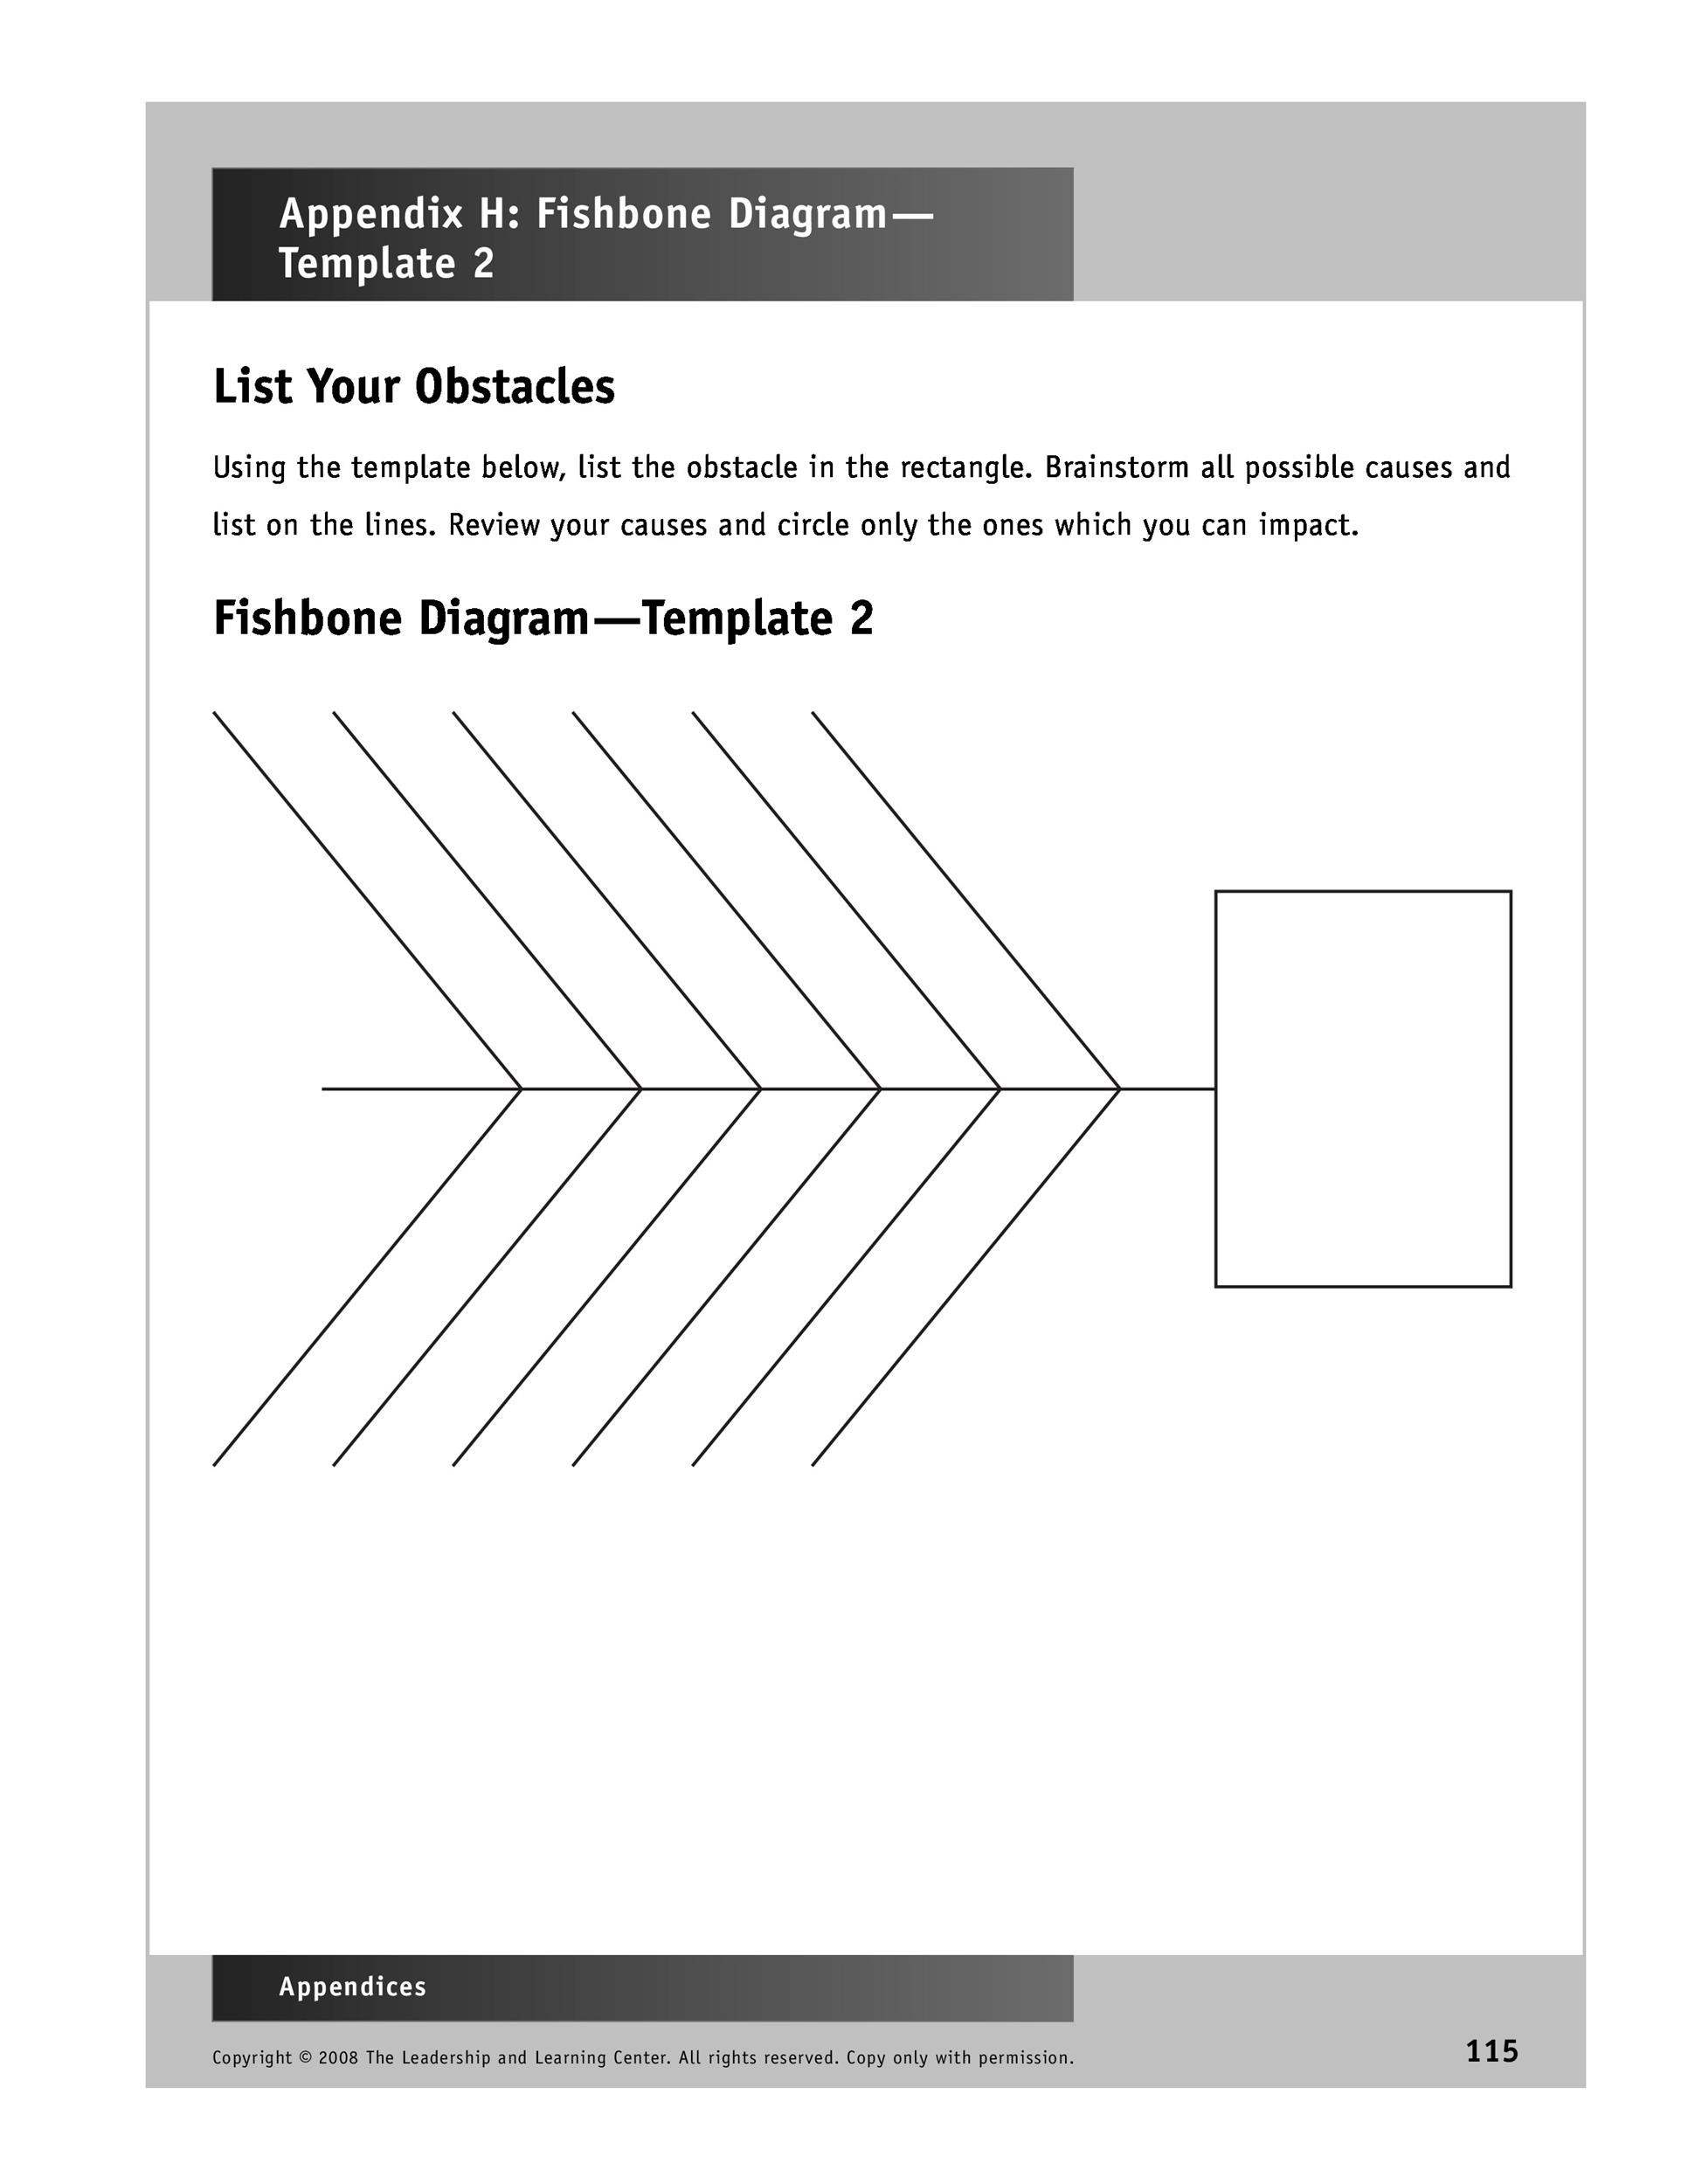 43 great fishbone diagram templates & examples [word, excel] wiring diagram template microsoft word